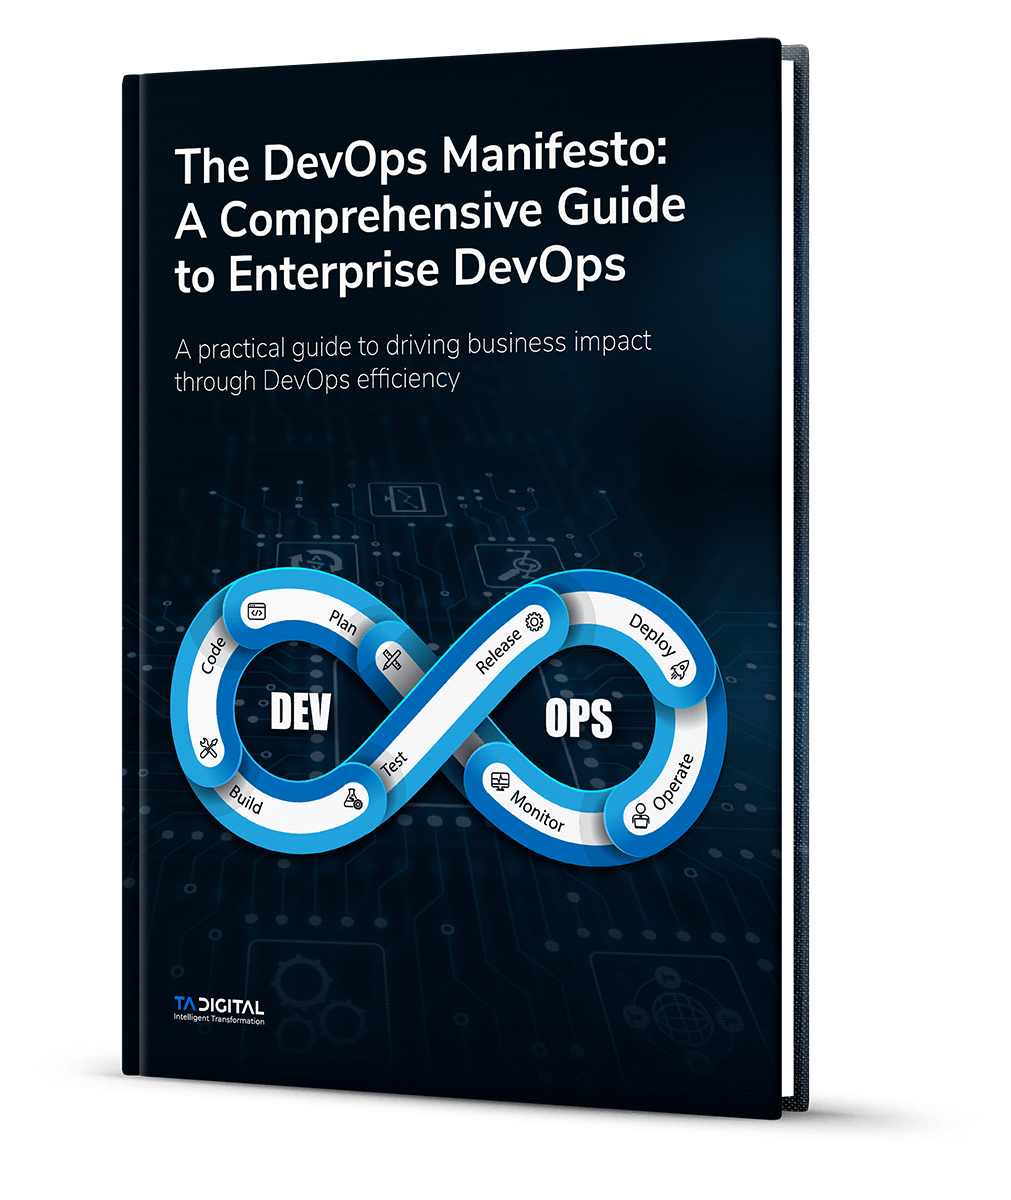 The DevOps Manifesto: A Comprehensive Guide to Enterprise DevOps